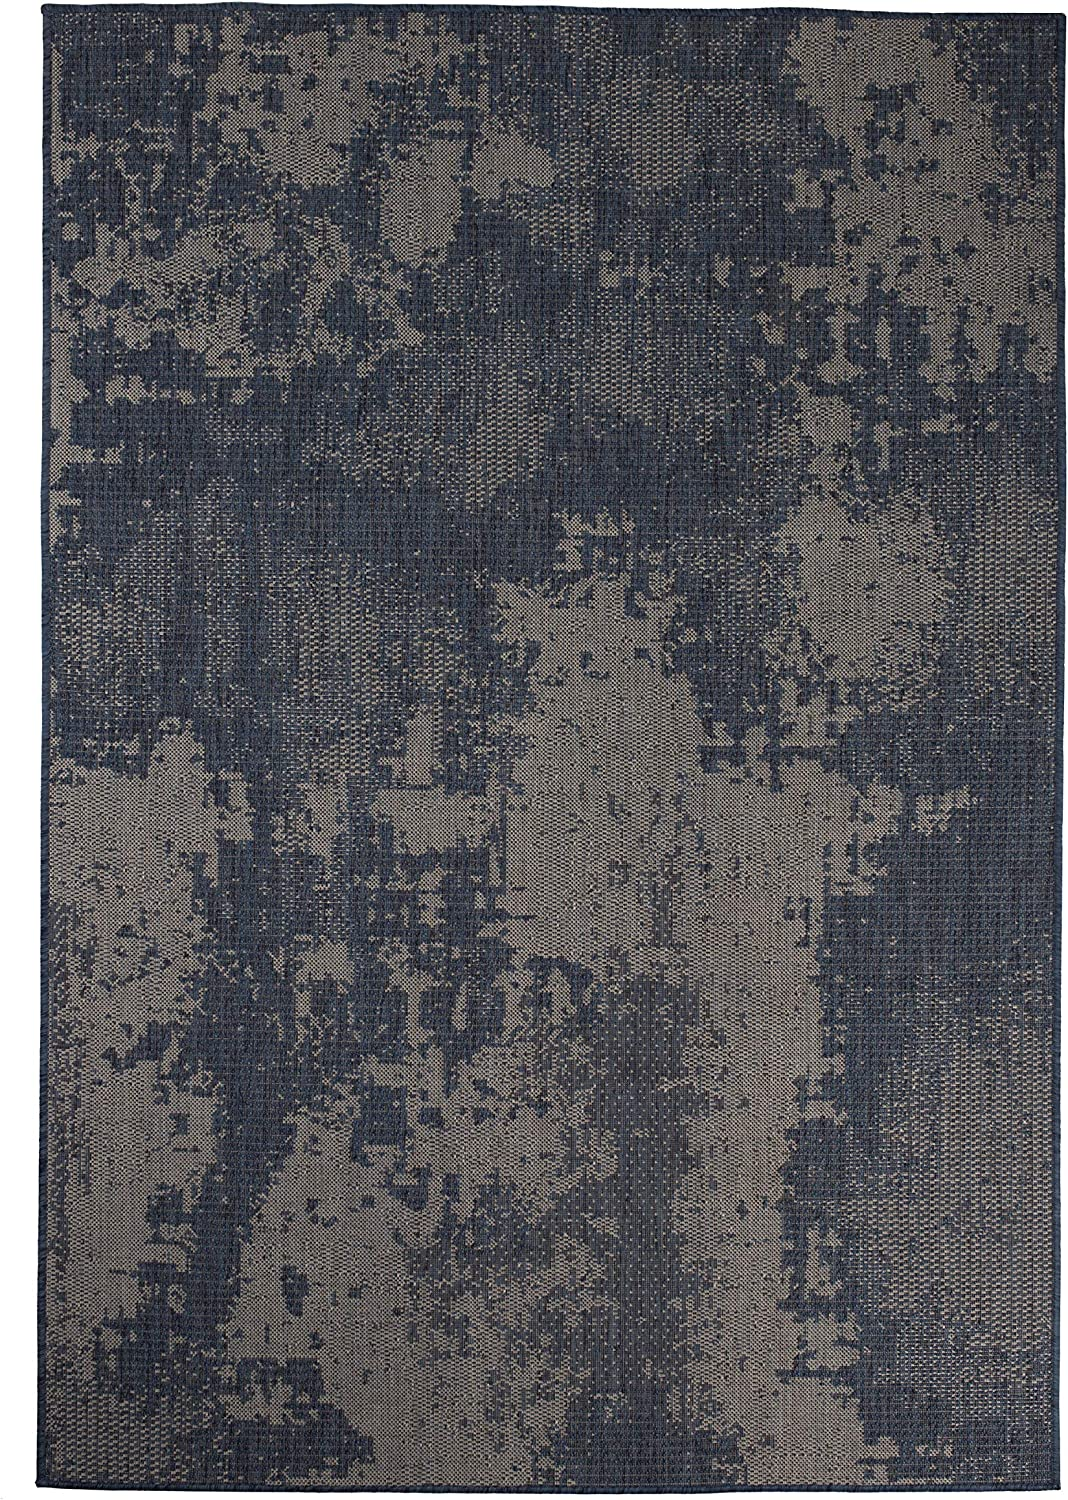 Furnish my Place Outdoor Collection Vintage Faded Rug - 5 ft. 3 in. x 7 ft. 6 in. Navy, Polypropylene Bohemian, Water Proof Rug for Patio, Bedroom (1126NVY5X7)